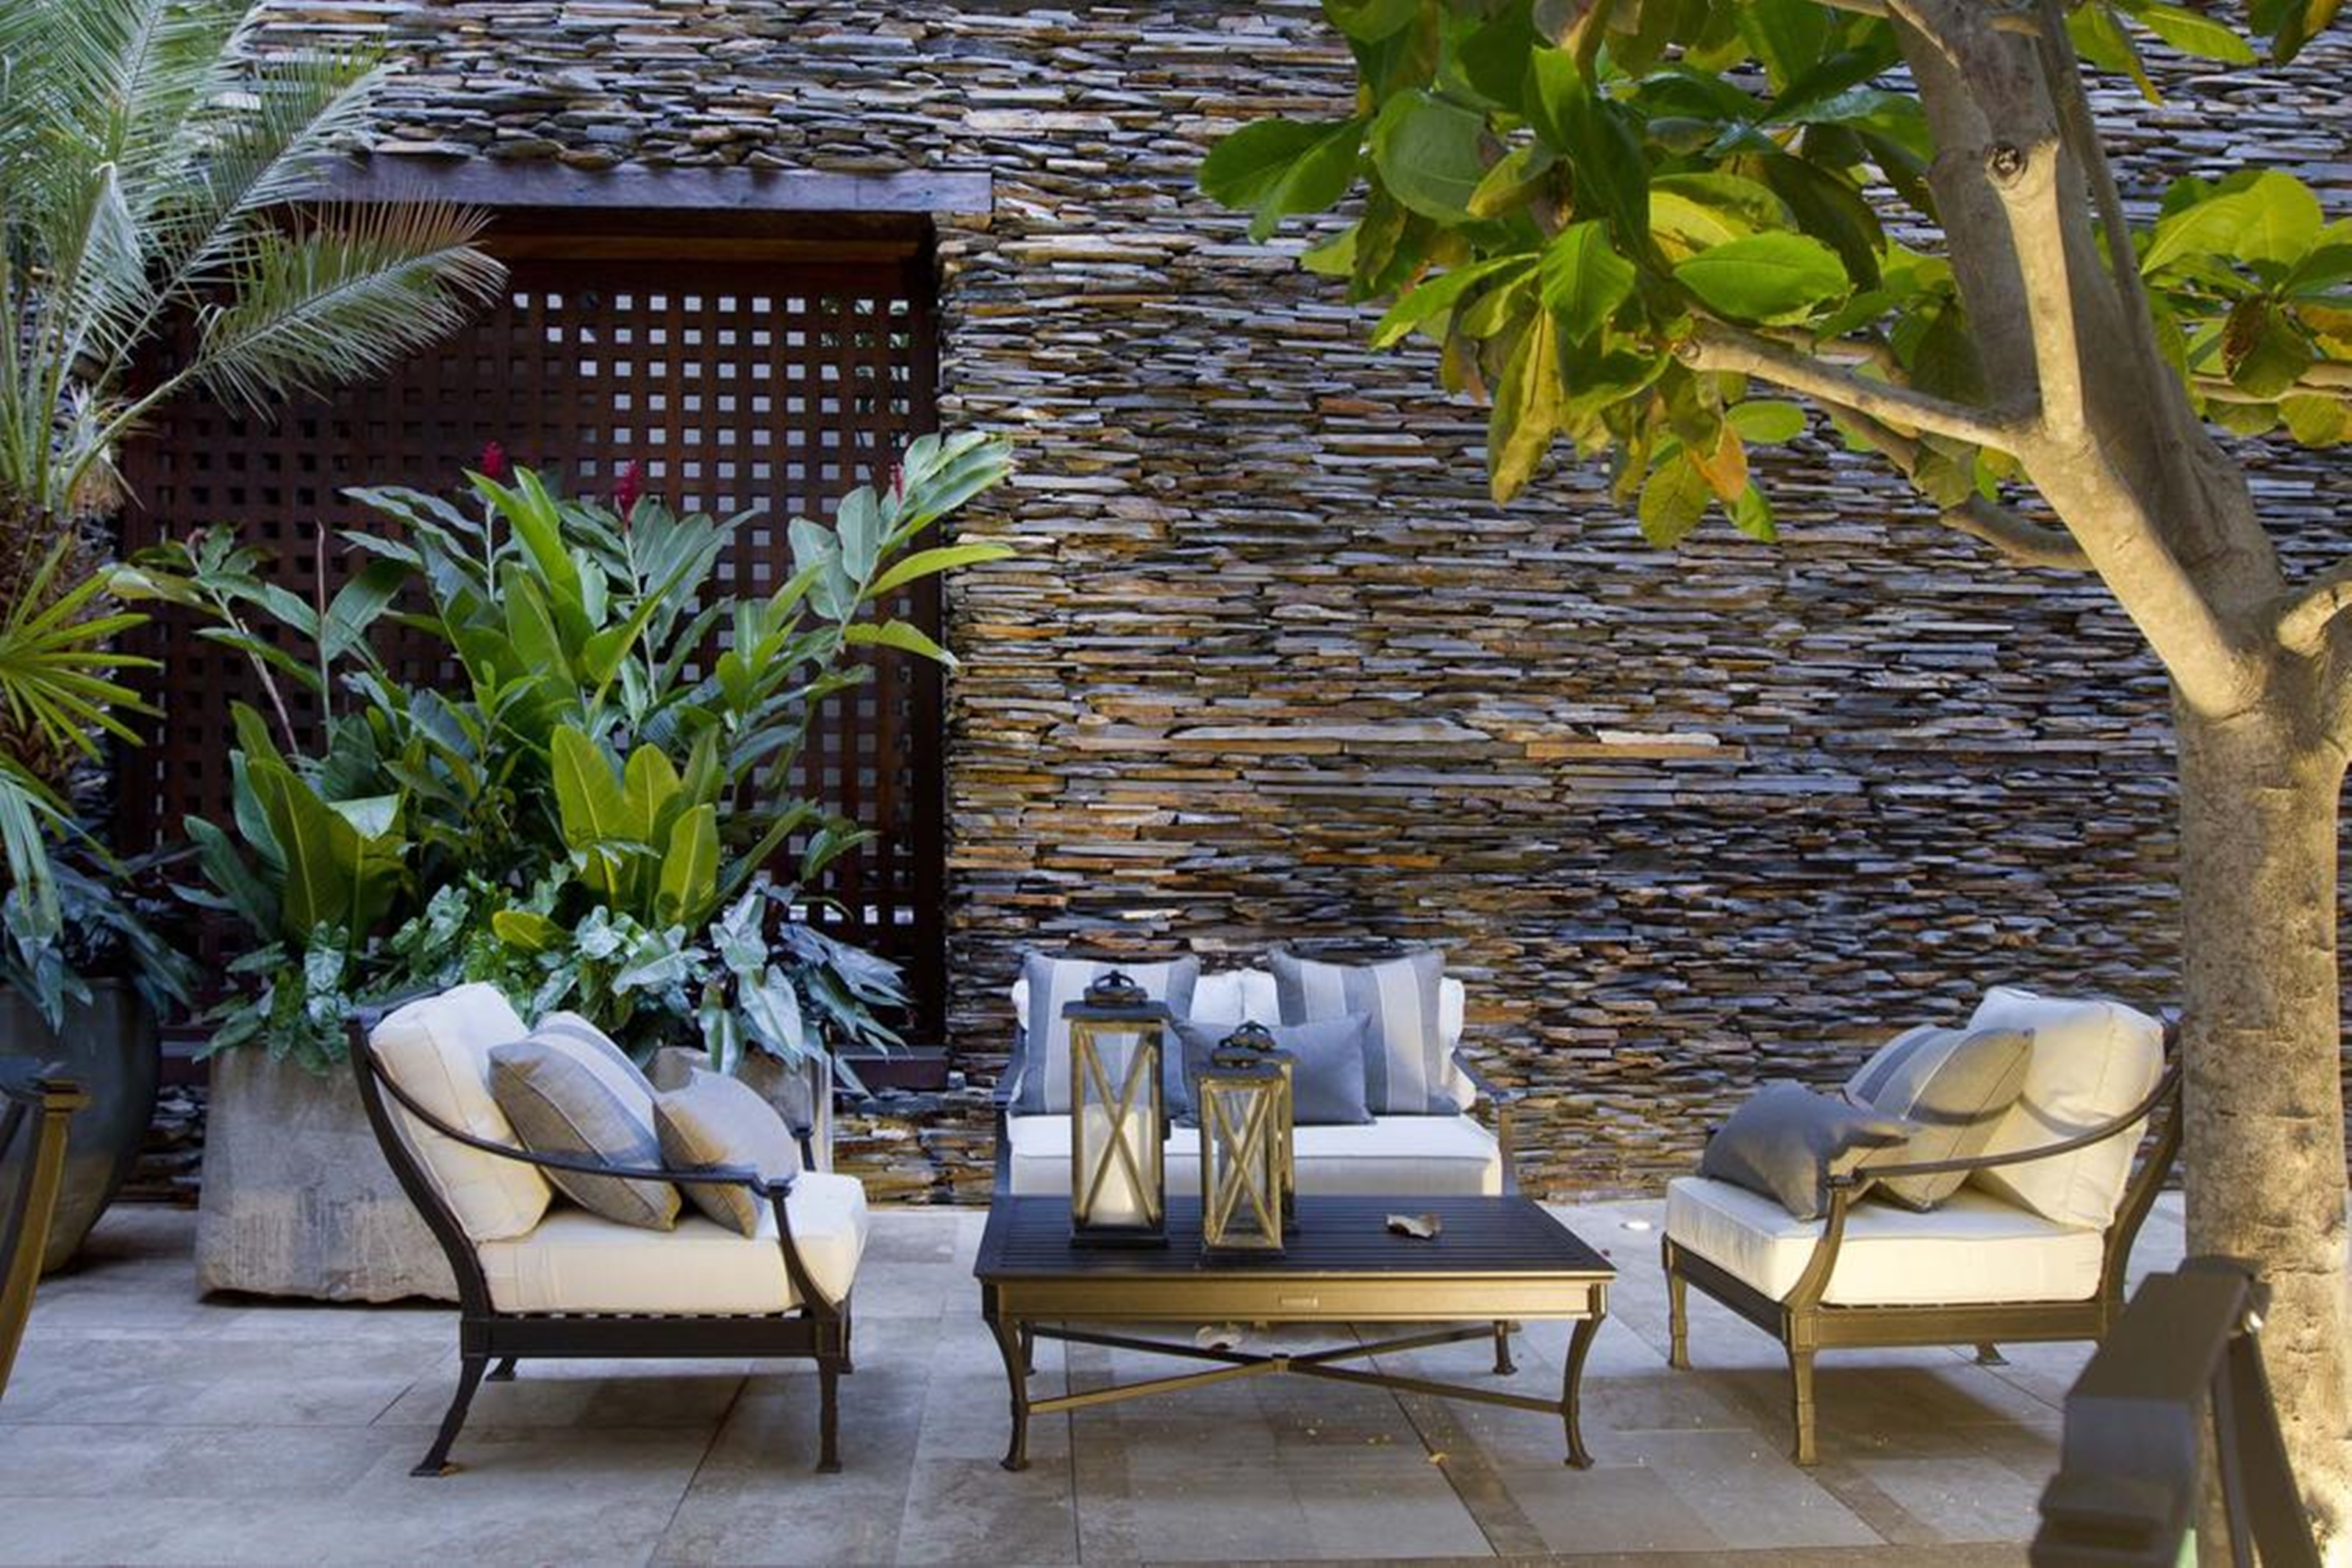 Bastion Luxury, Cartagena de Indias